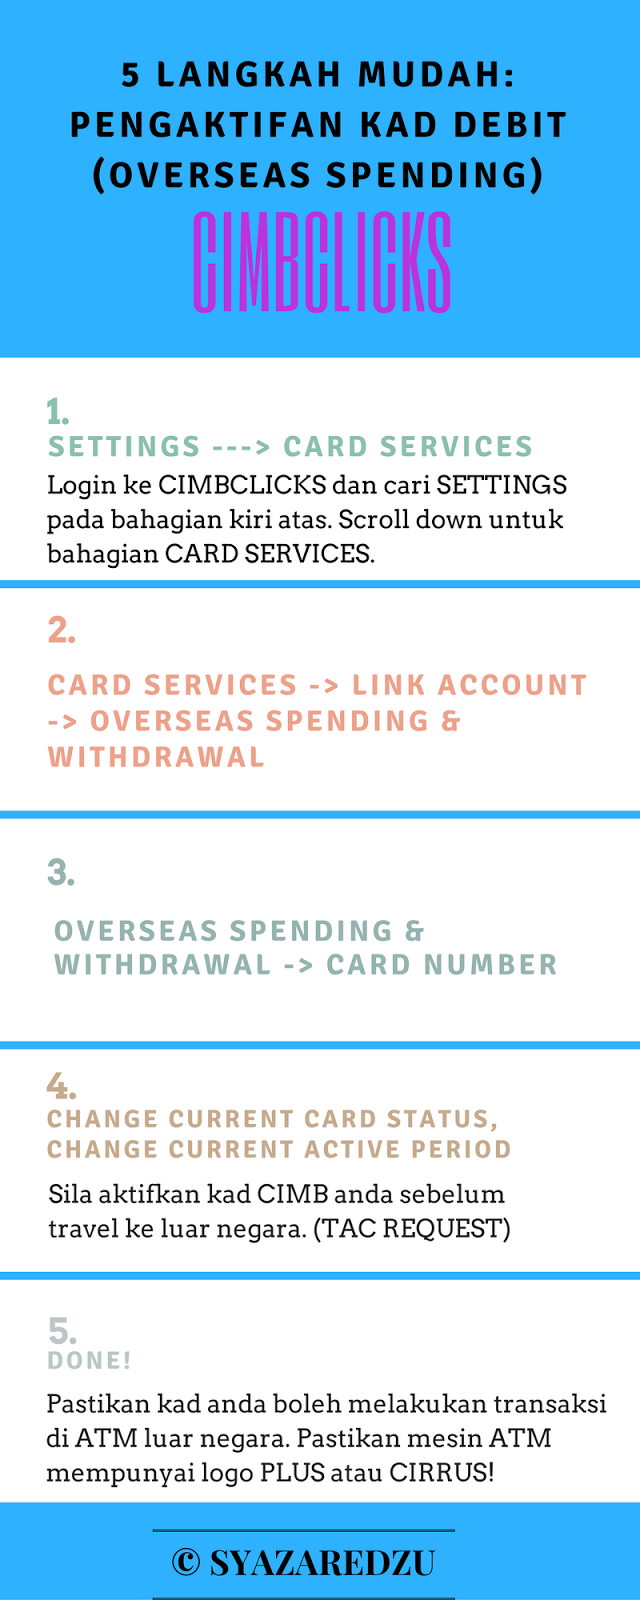 cimbclicks, cimb, atm, debit card, overseas spending